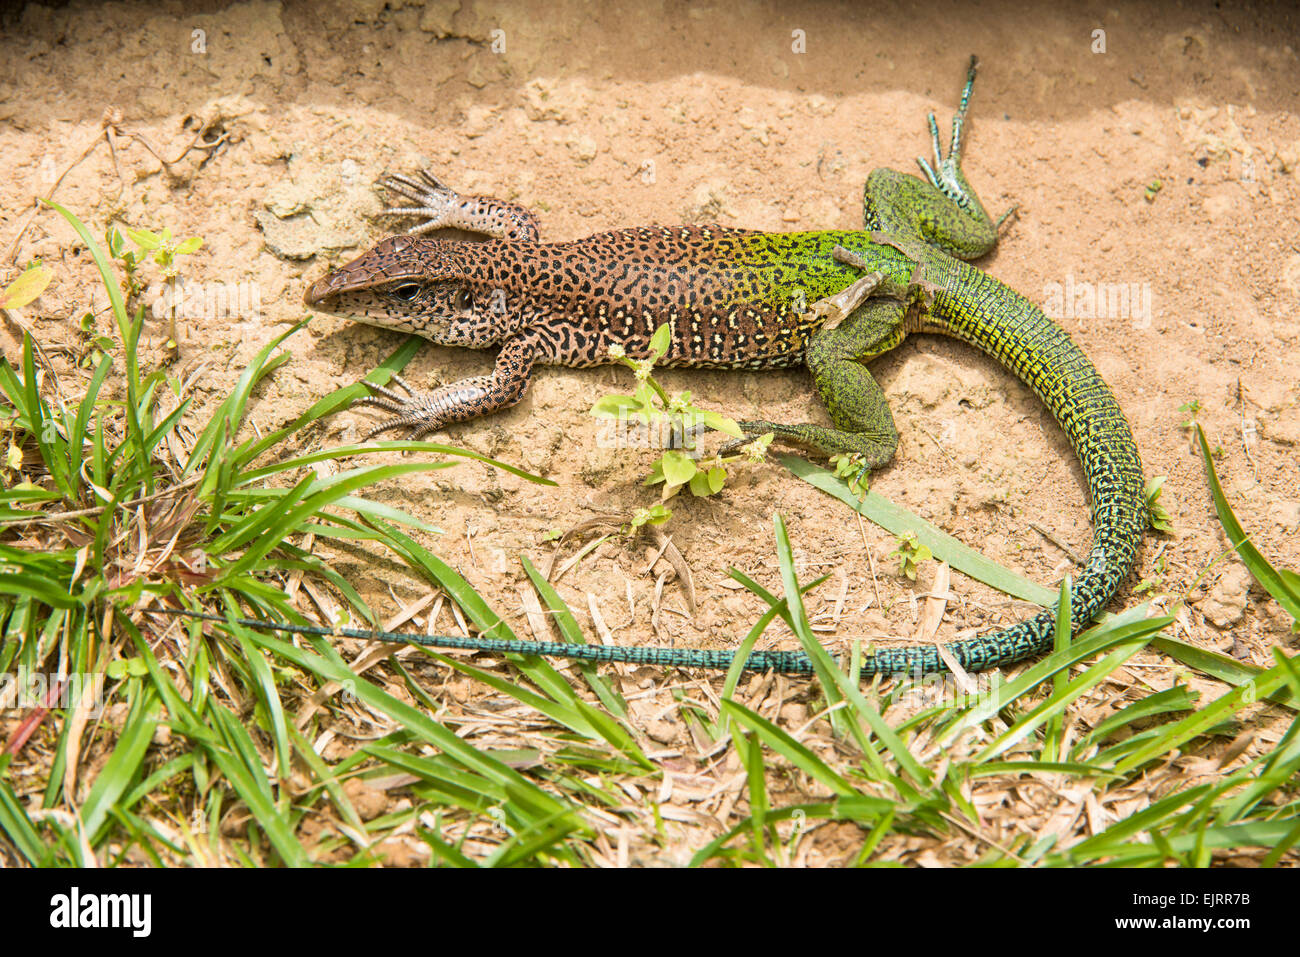 Lizard, Central Suriname Nature Reserve, Suriname - Stock Image